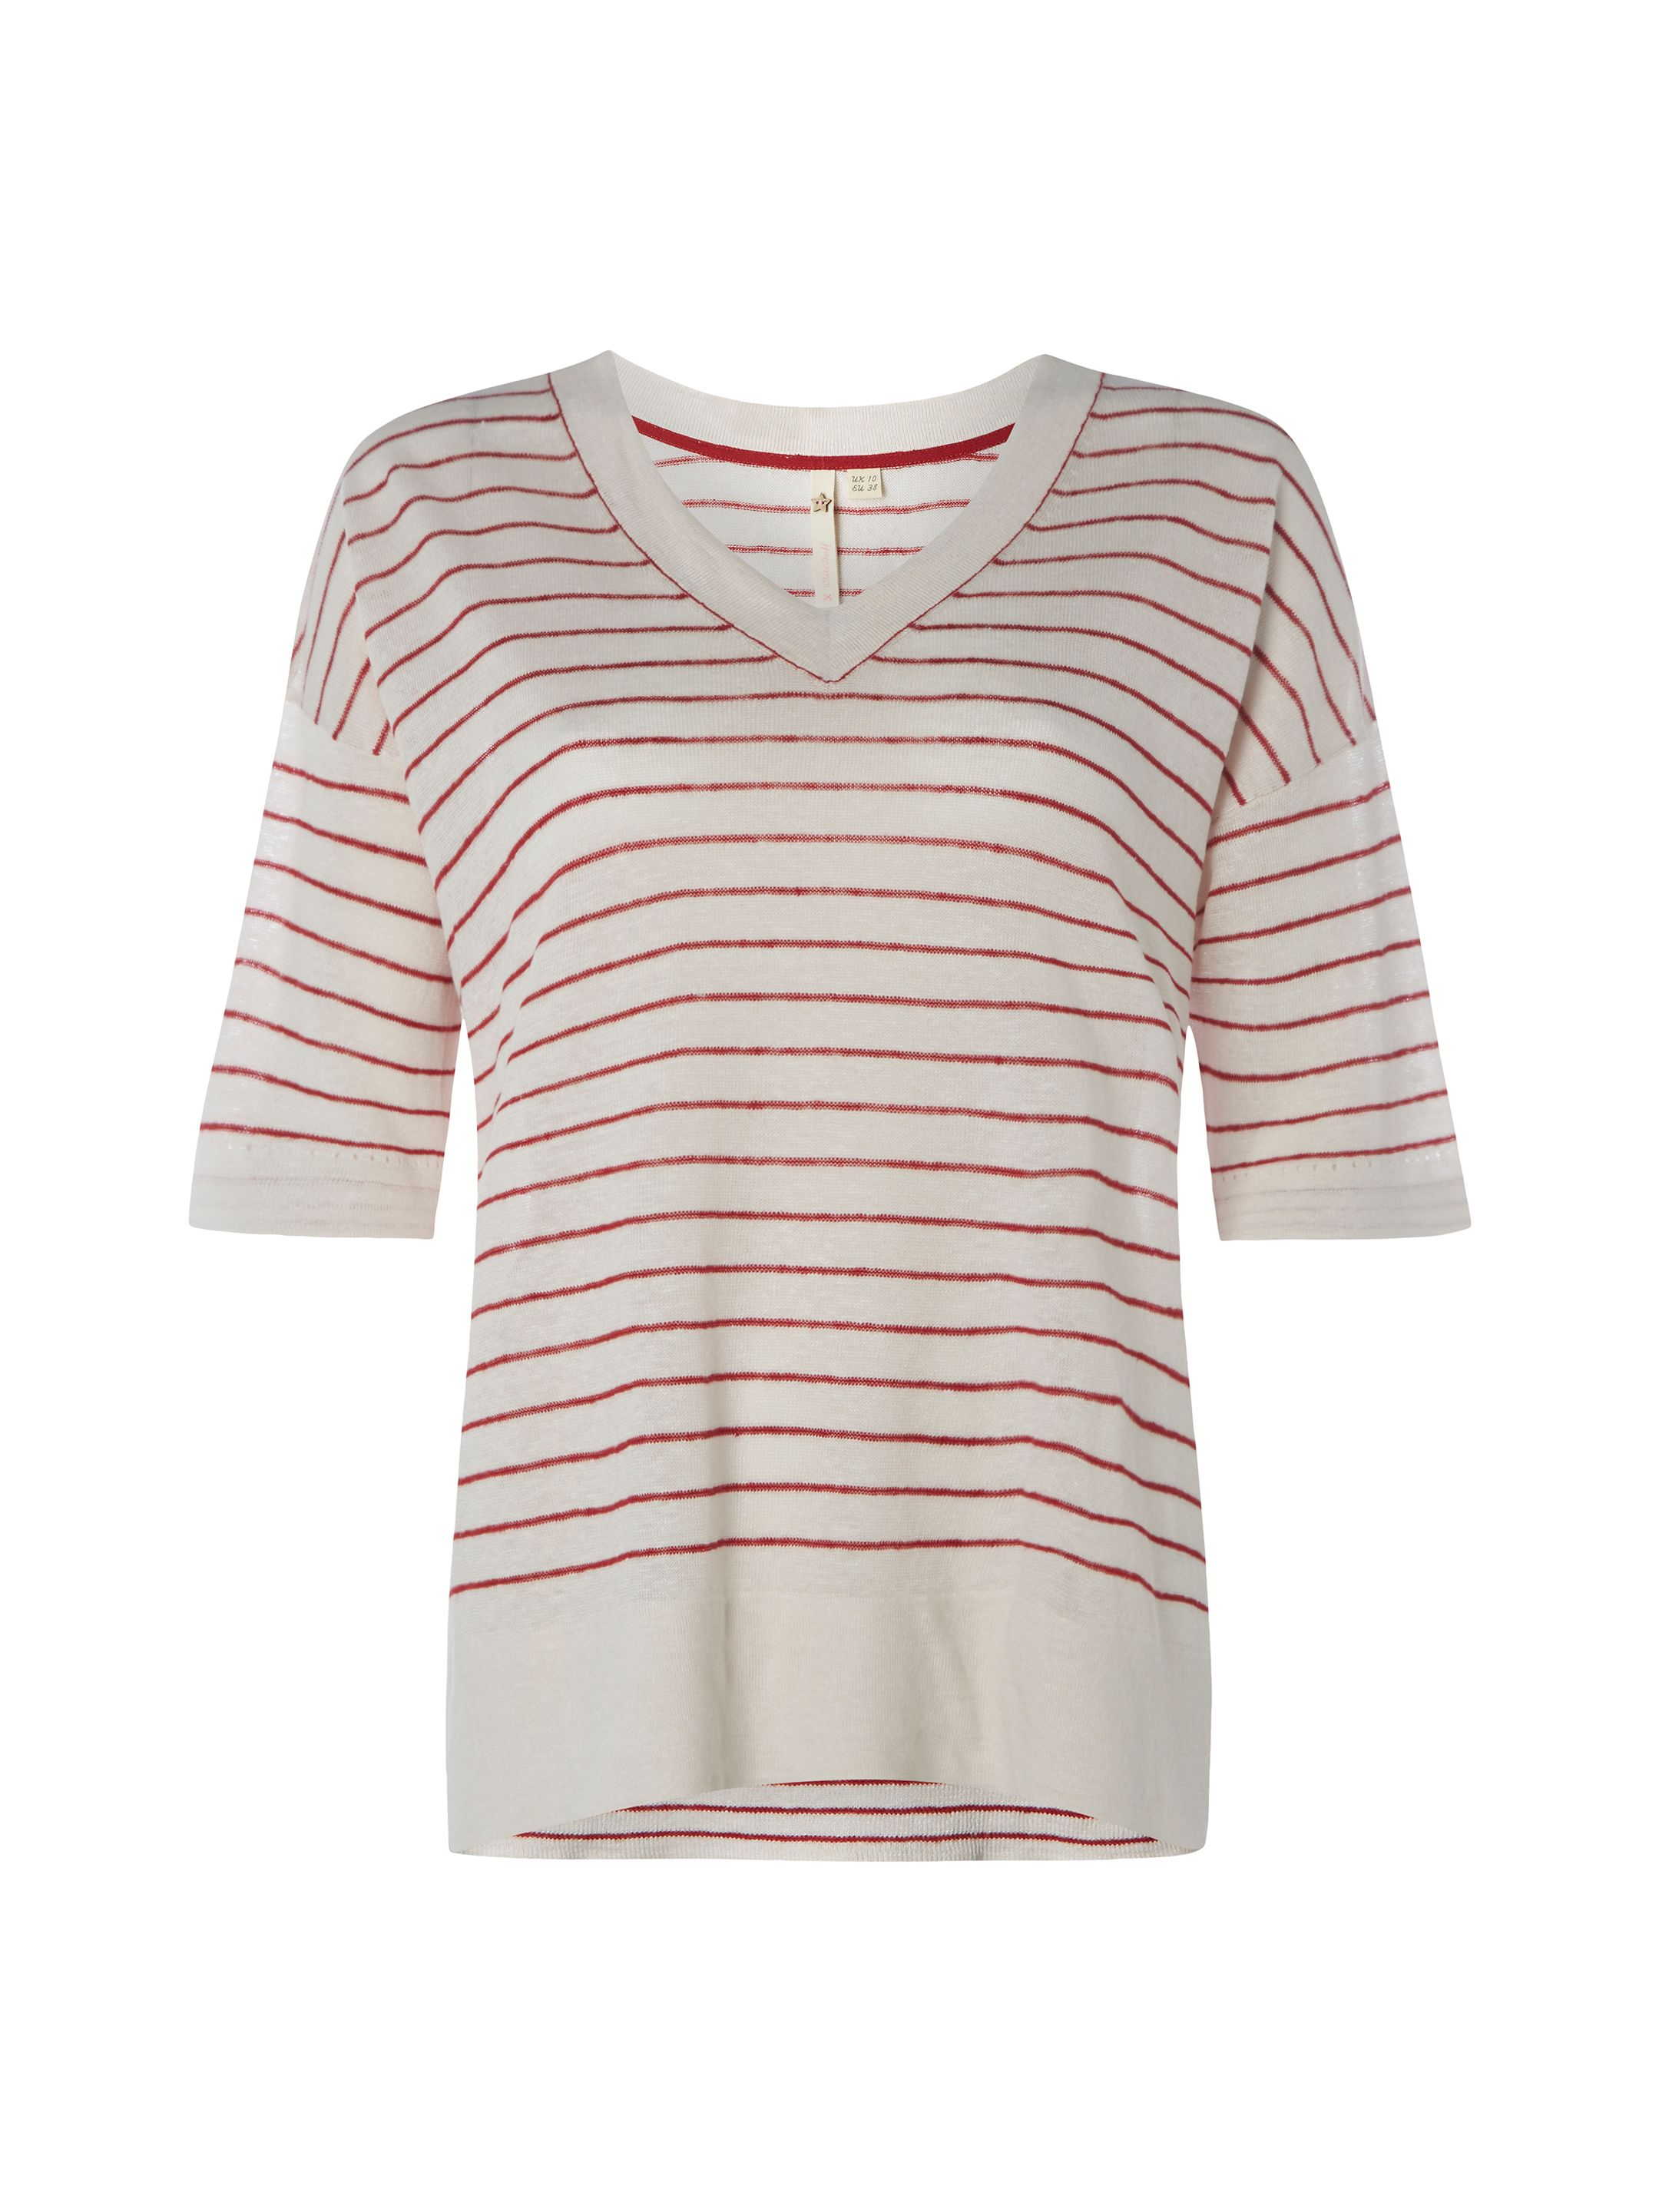 White Stuff Island Linen V Neck Top, Red